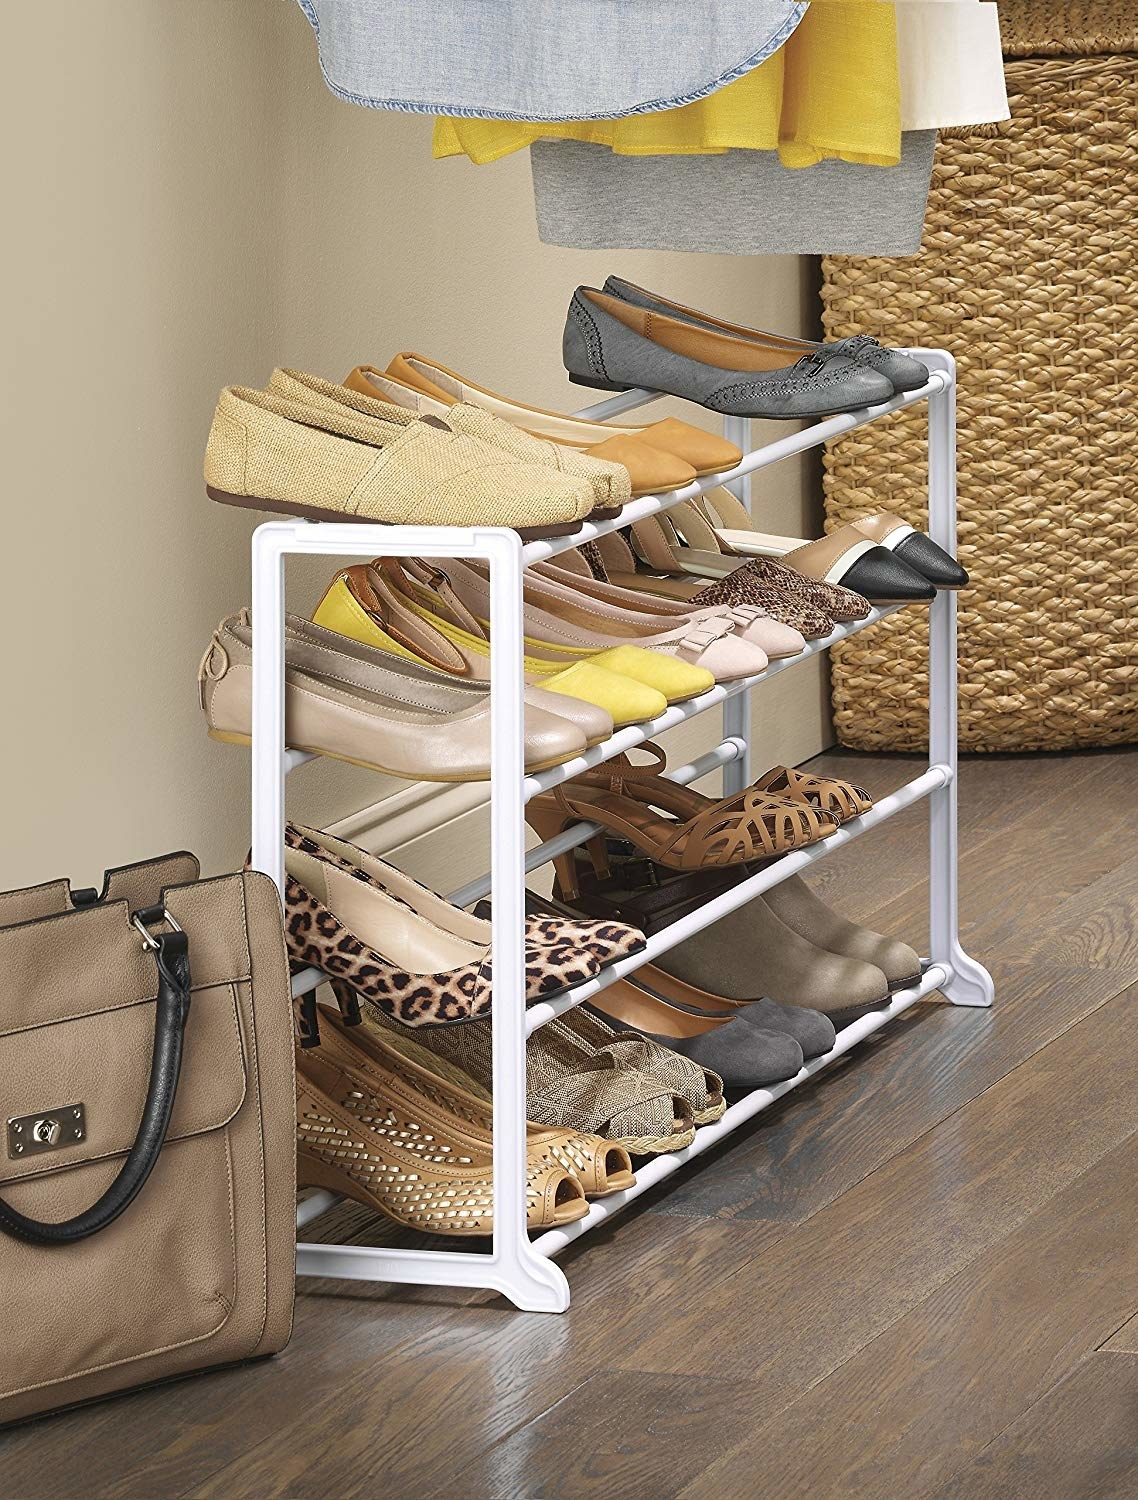 white plastic rack organizing heels, flats, and sneakers in a closet